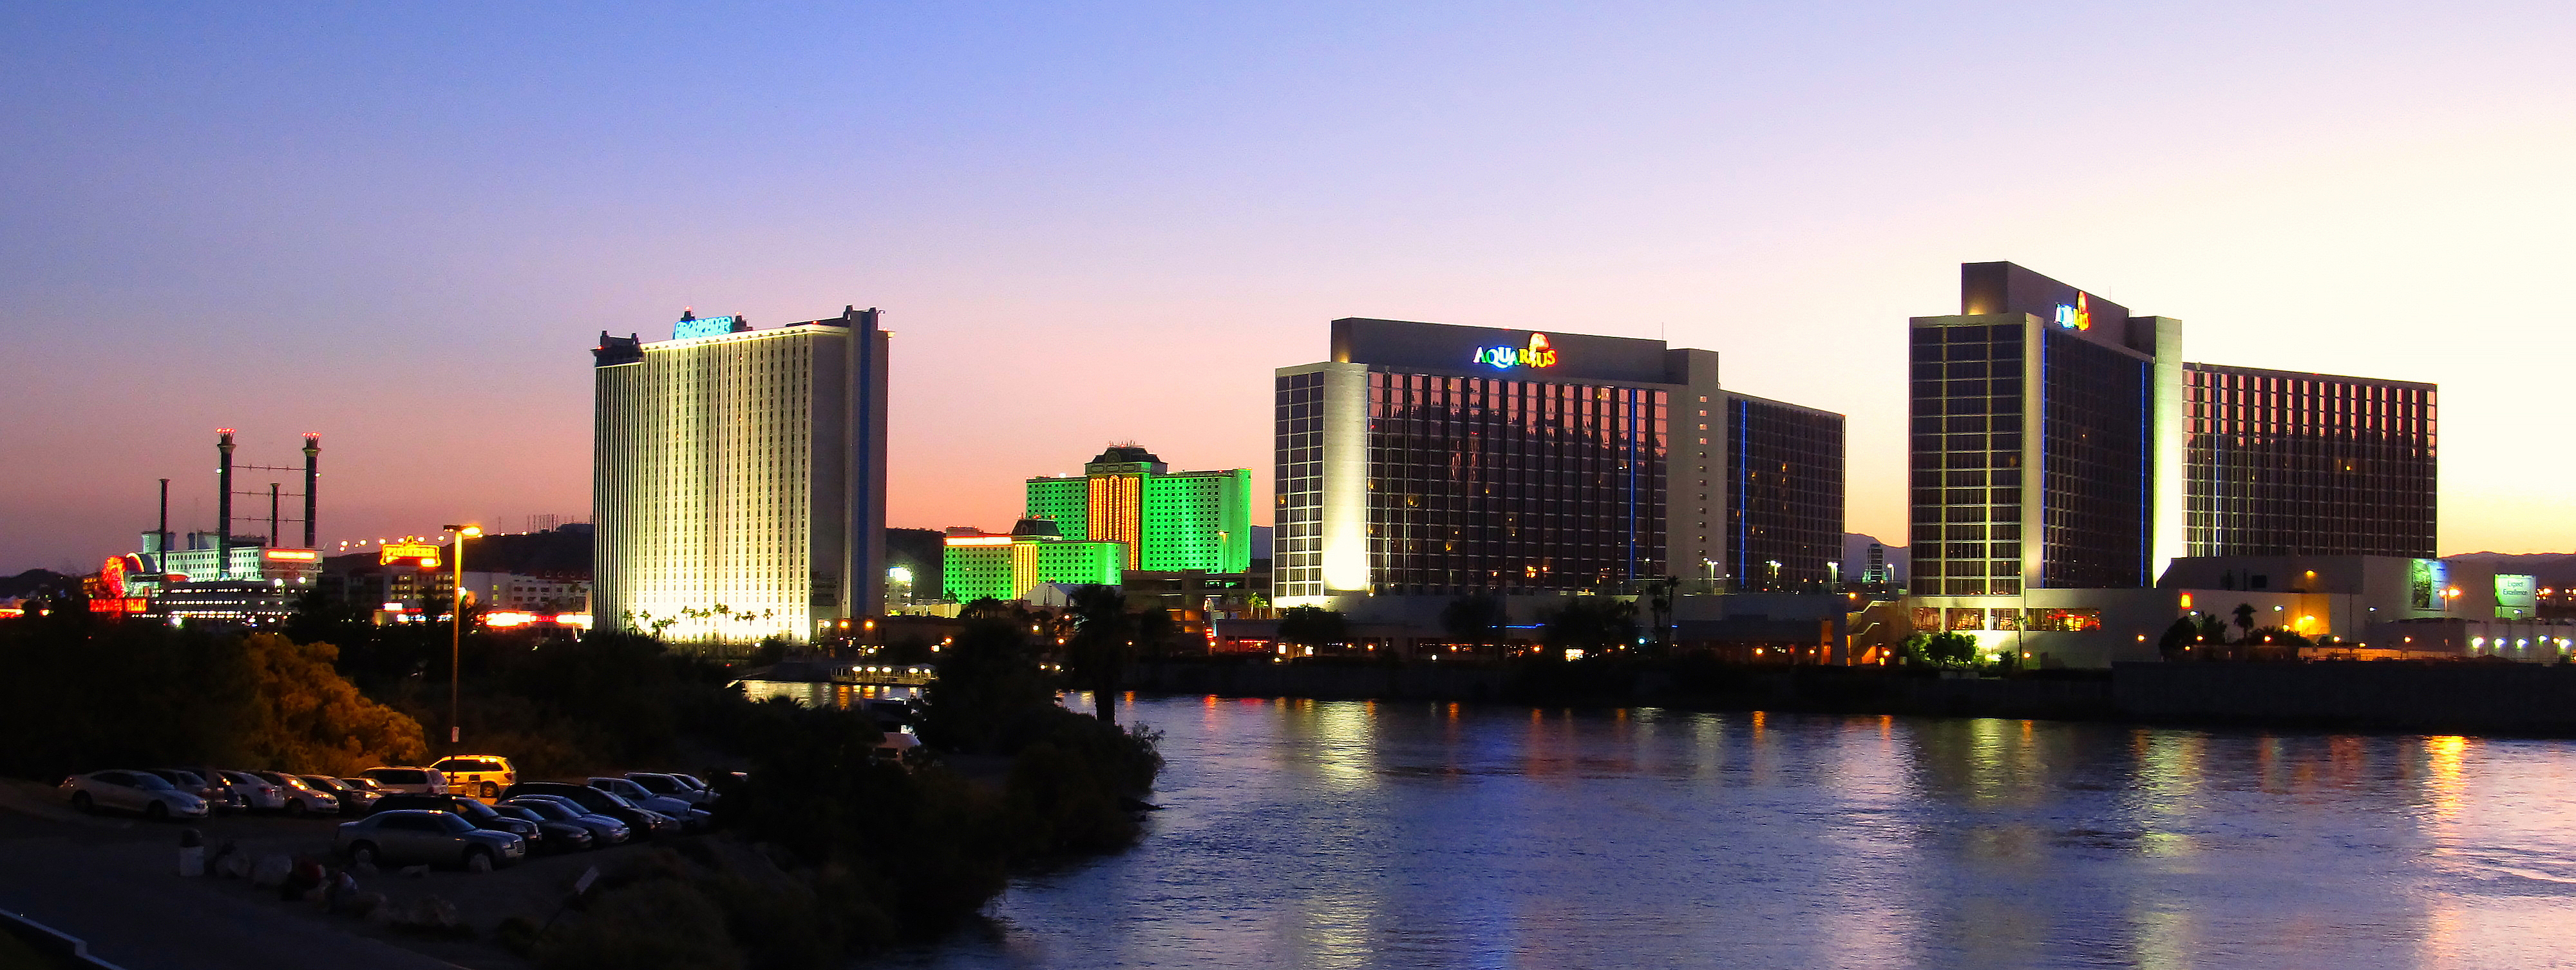 Gleaming and colorful casinos reflected on a river.